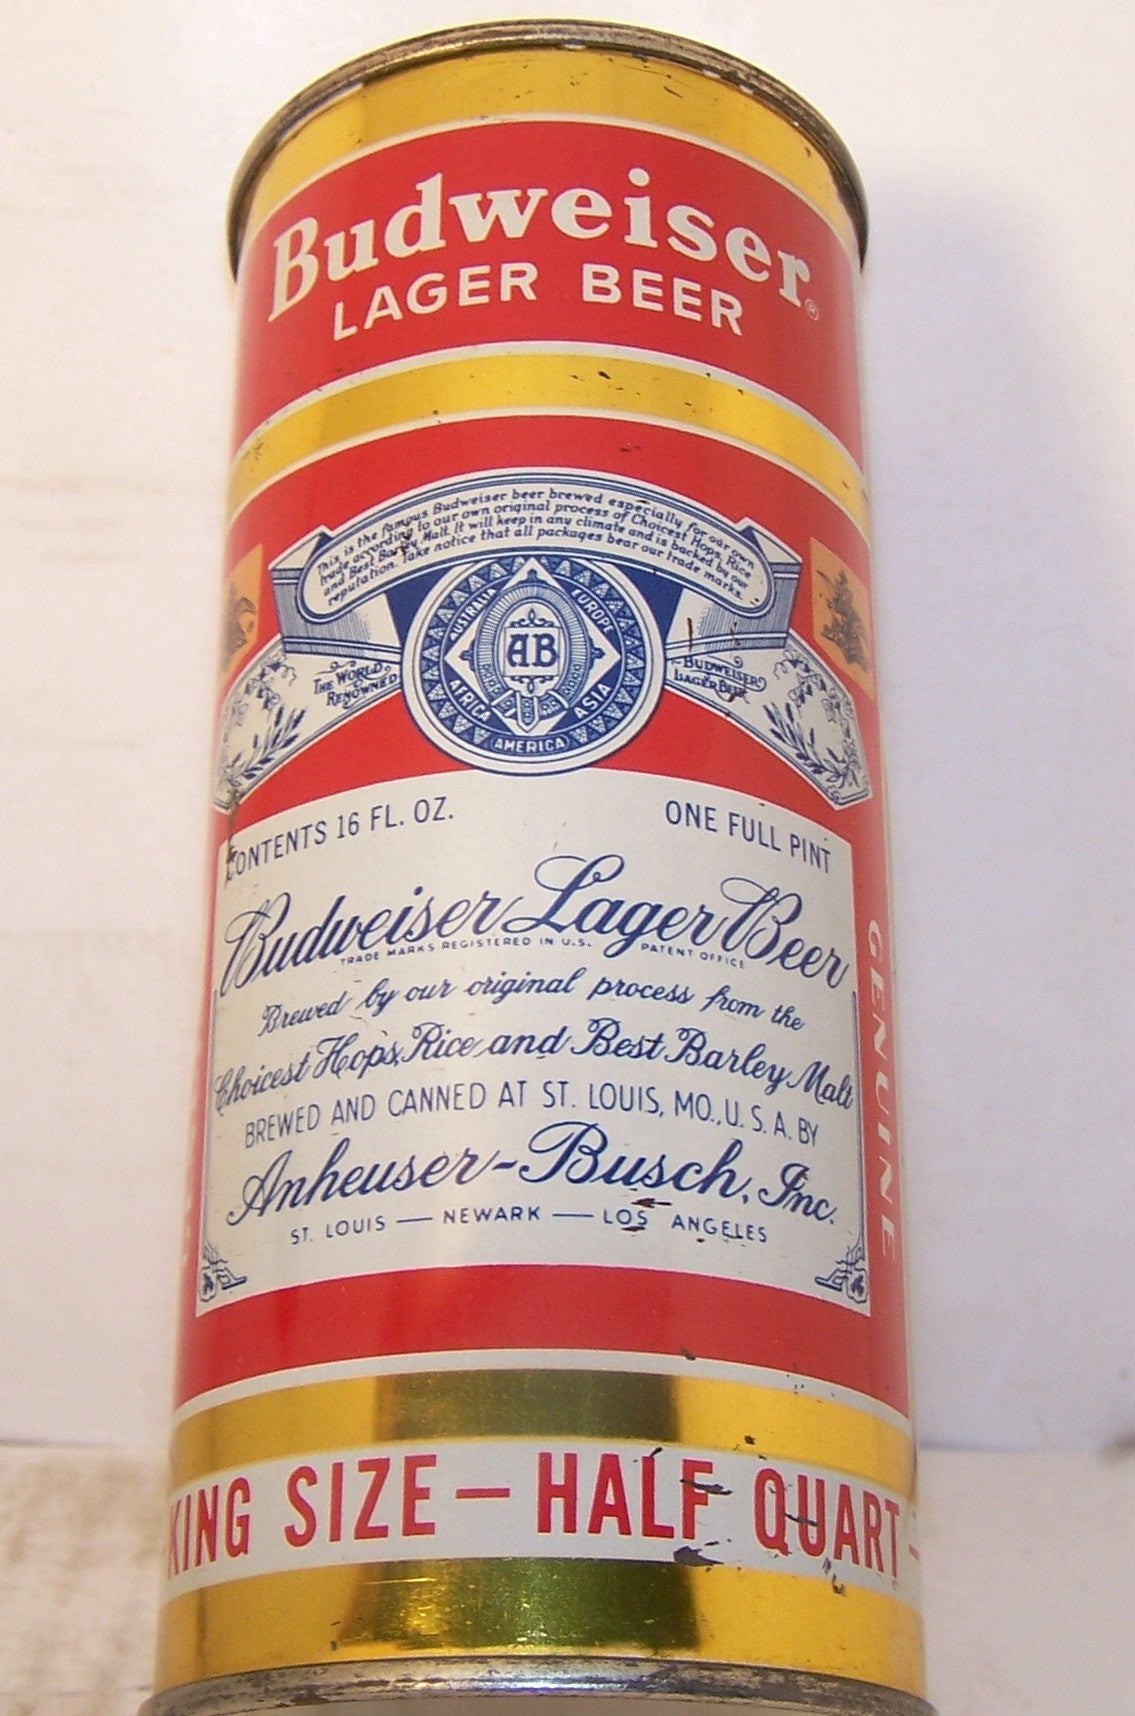 Budweiser Lager Beer, USBC 226-23, Grade 1 to 1/1+ Sold on 05/13/16